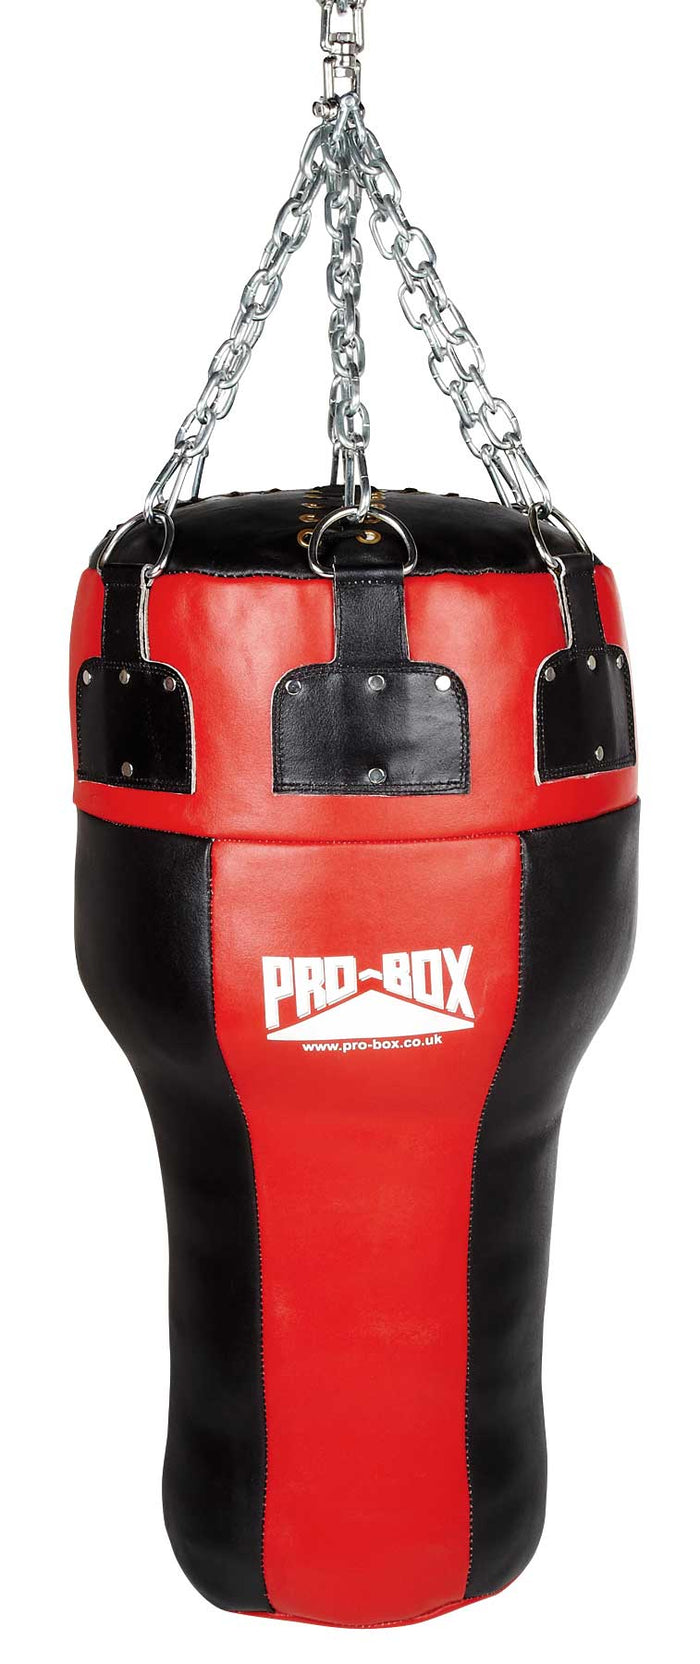 Pro Box Red Leather Uppercut Angle Bag (35kg)